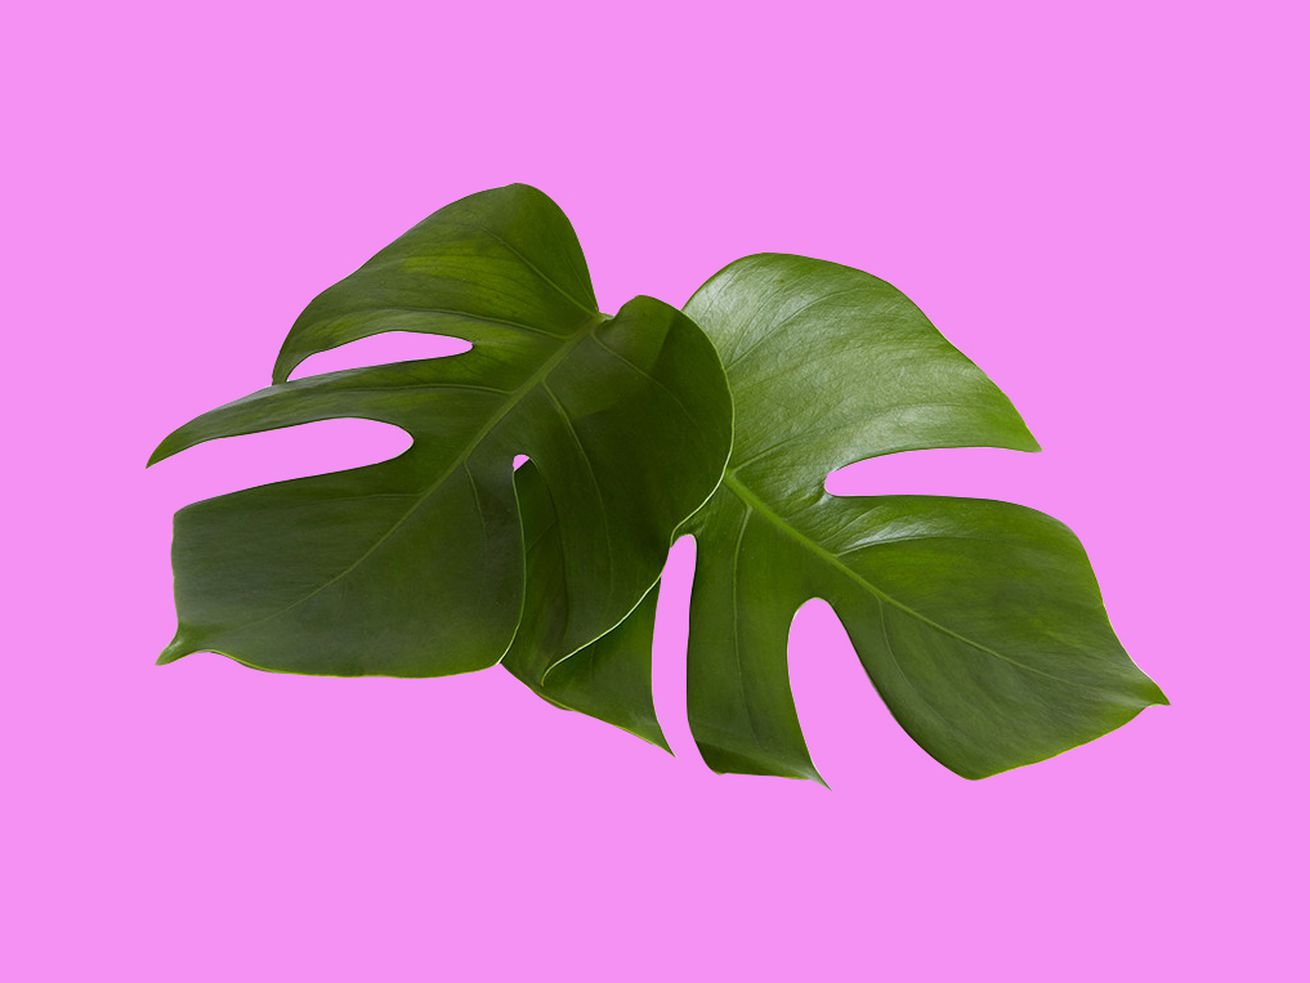 The best thing to buy for yourself this Prime Day: A houseplant